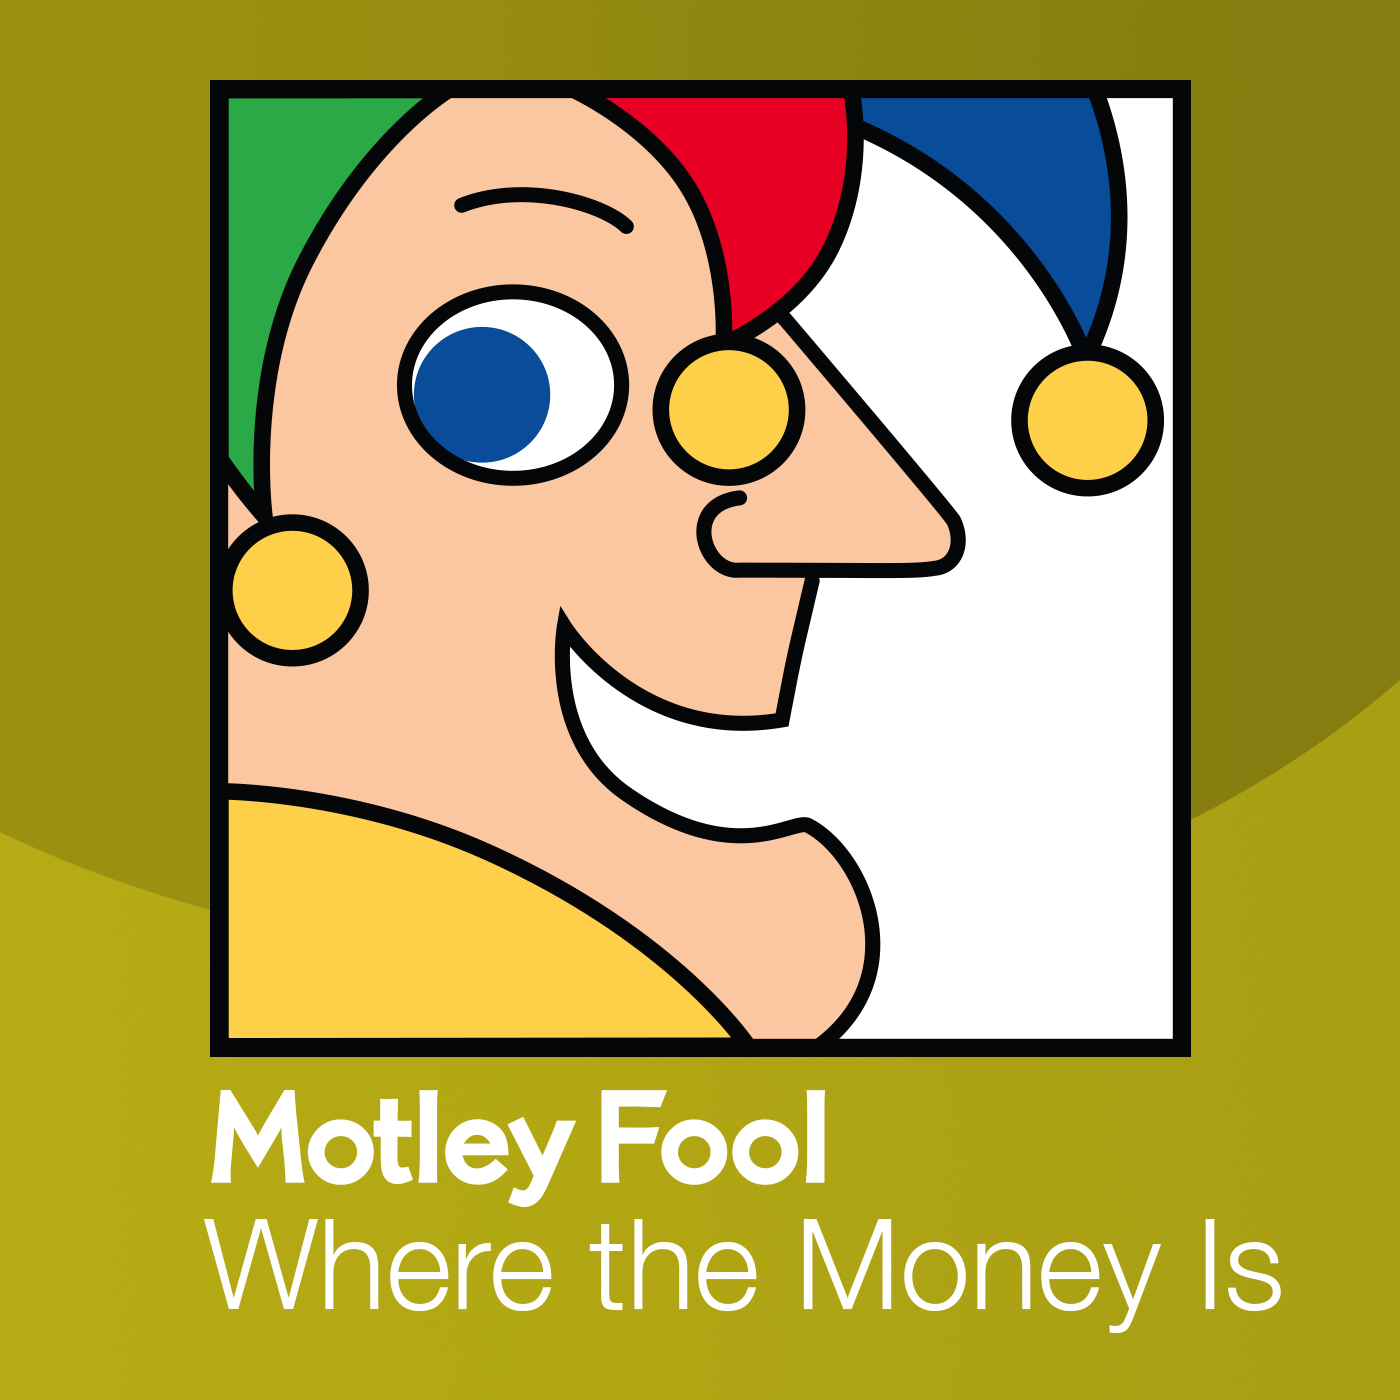 Where the Money Is 02.28.14